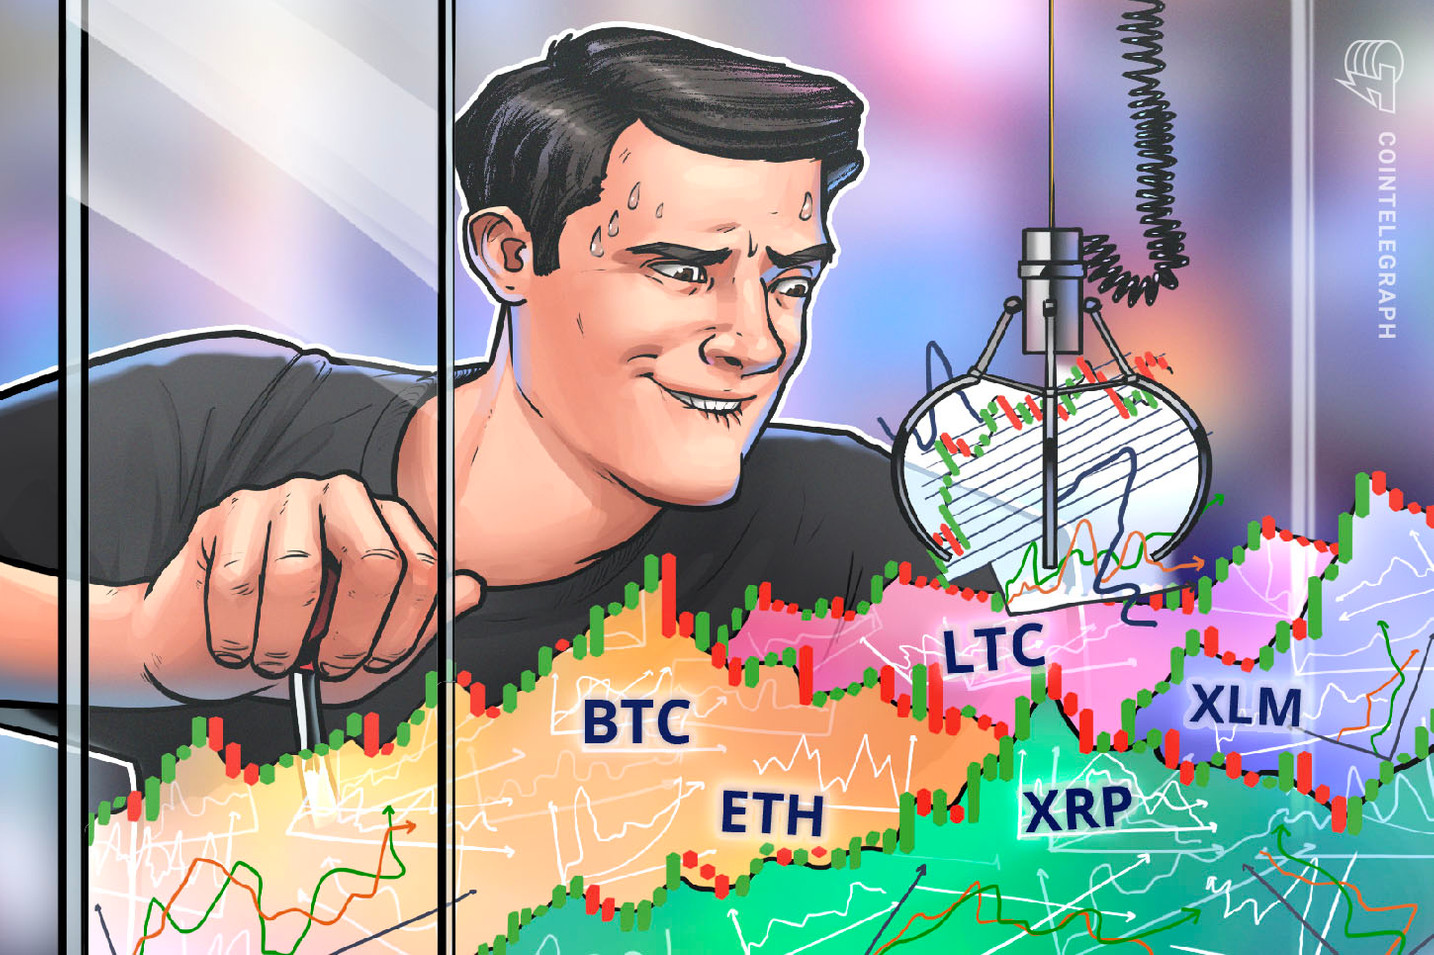 Top 5 cryptocurrencies to watch this week: BTC, ETH, XRP, LTC, XLM